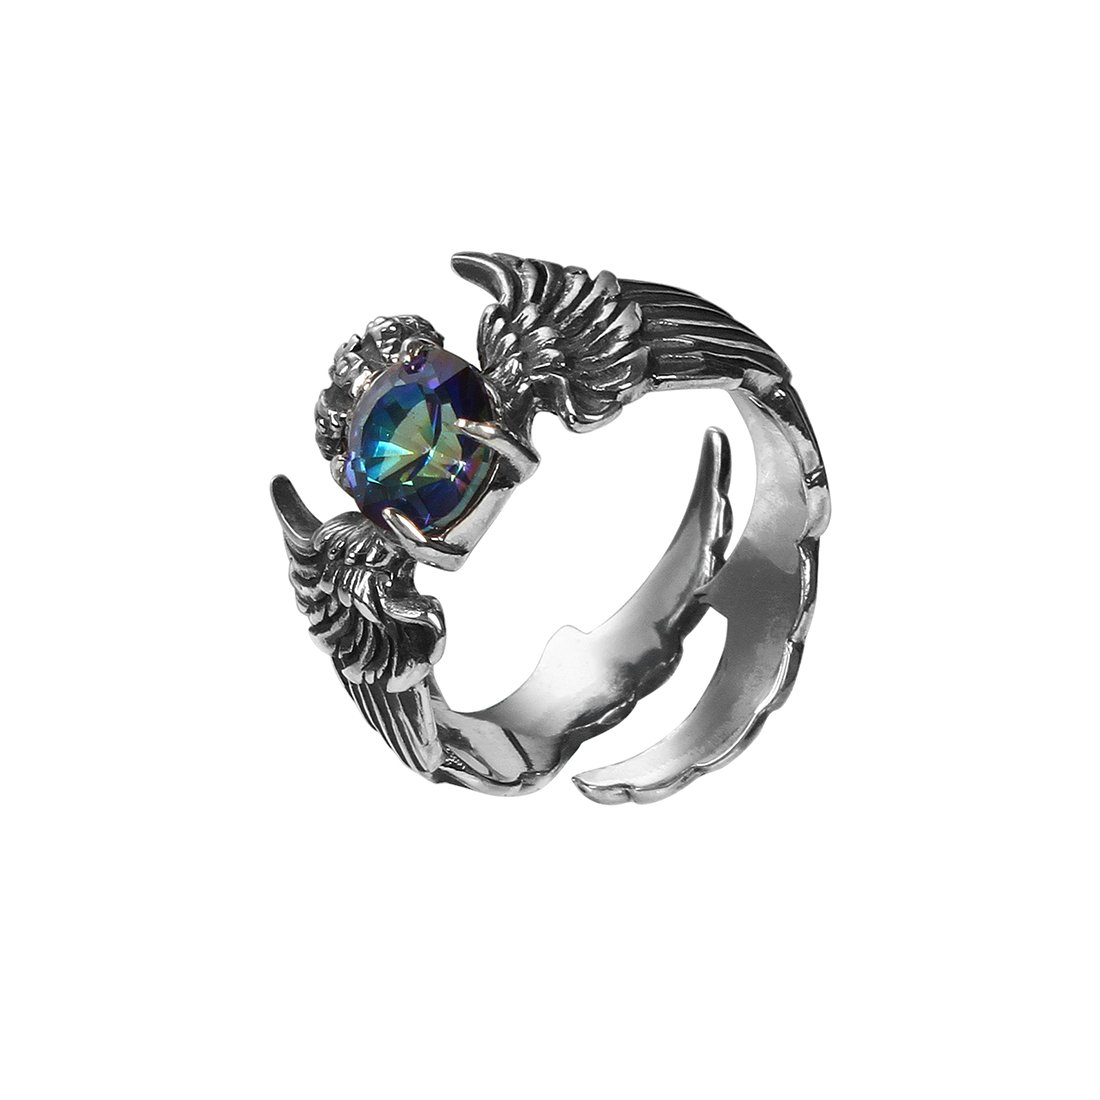 Rock&Ride S925 Handmade Vintage Rings Colorful Crystal Heart Wings Rings